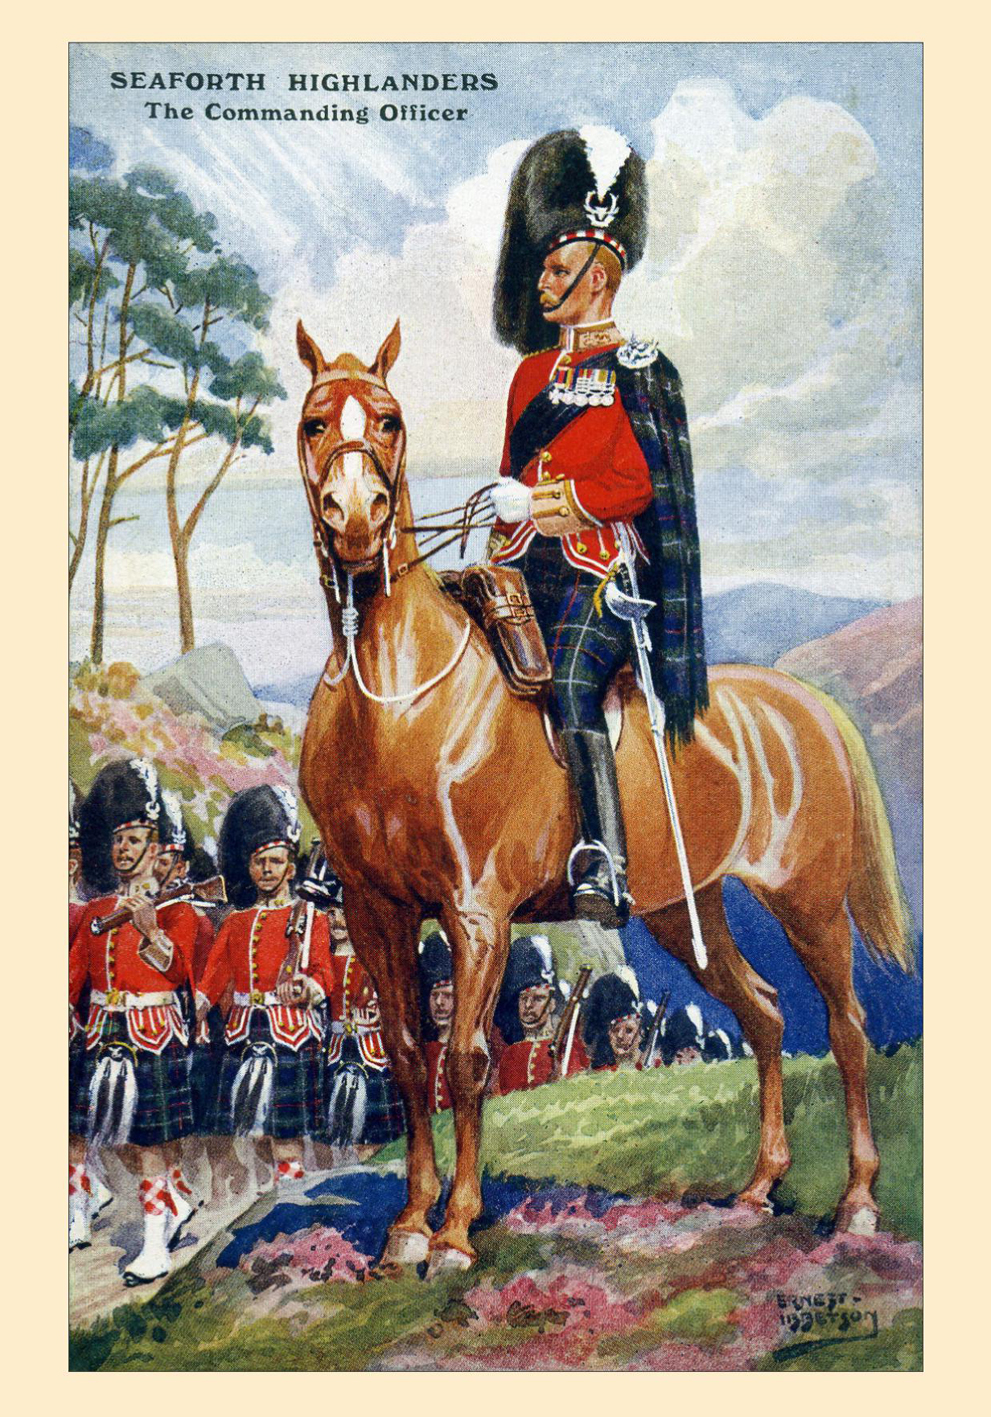 Seaforth Highlanders The Commanding Officer